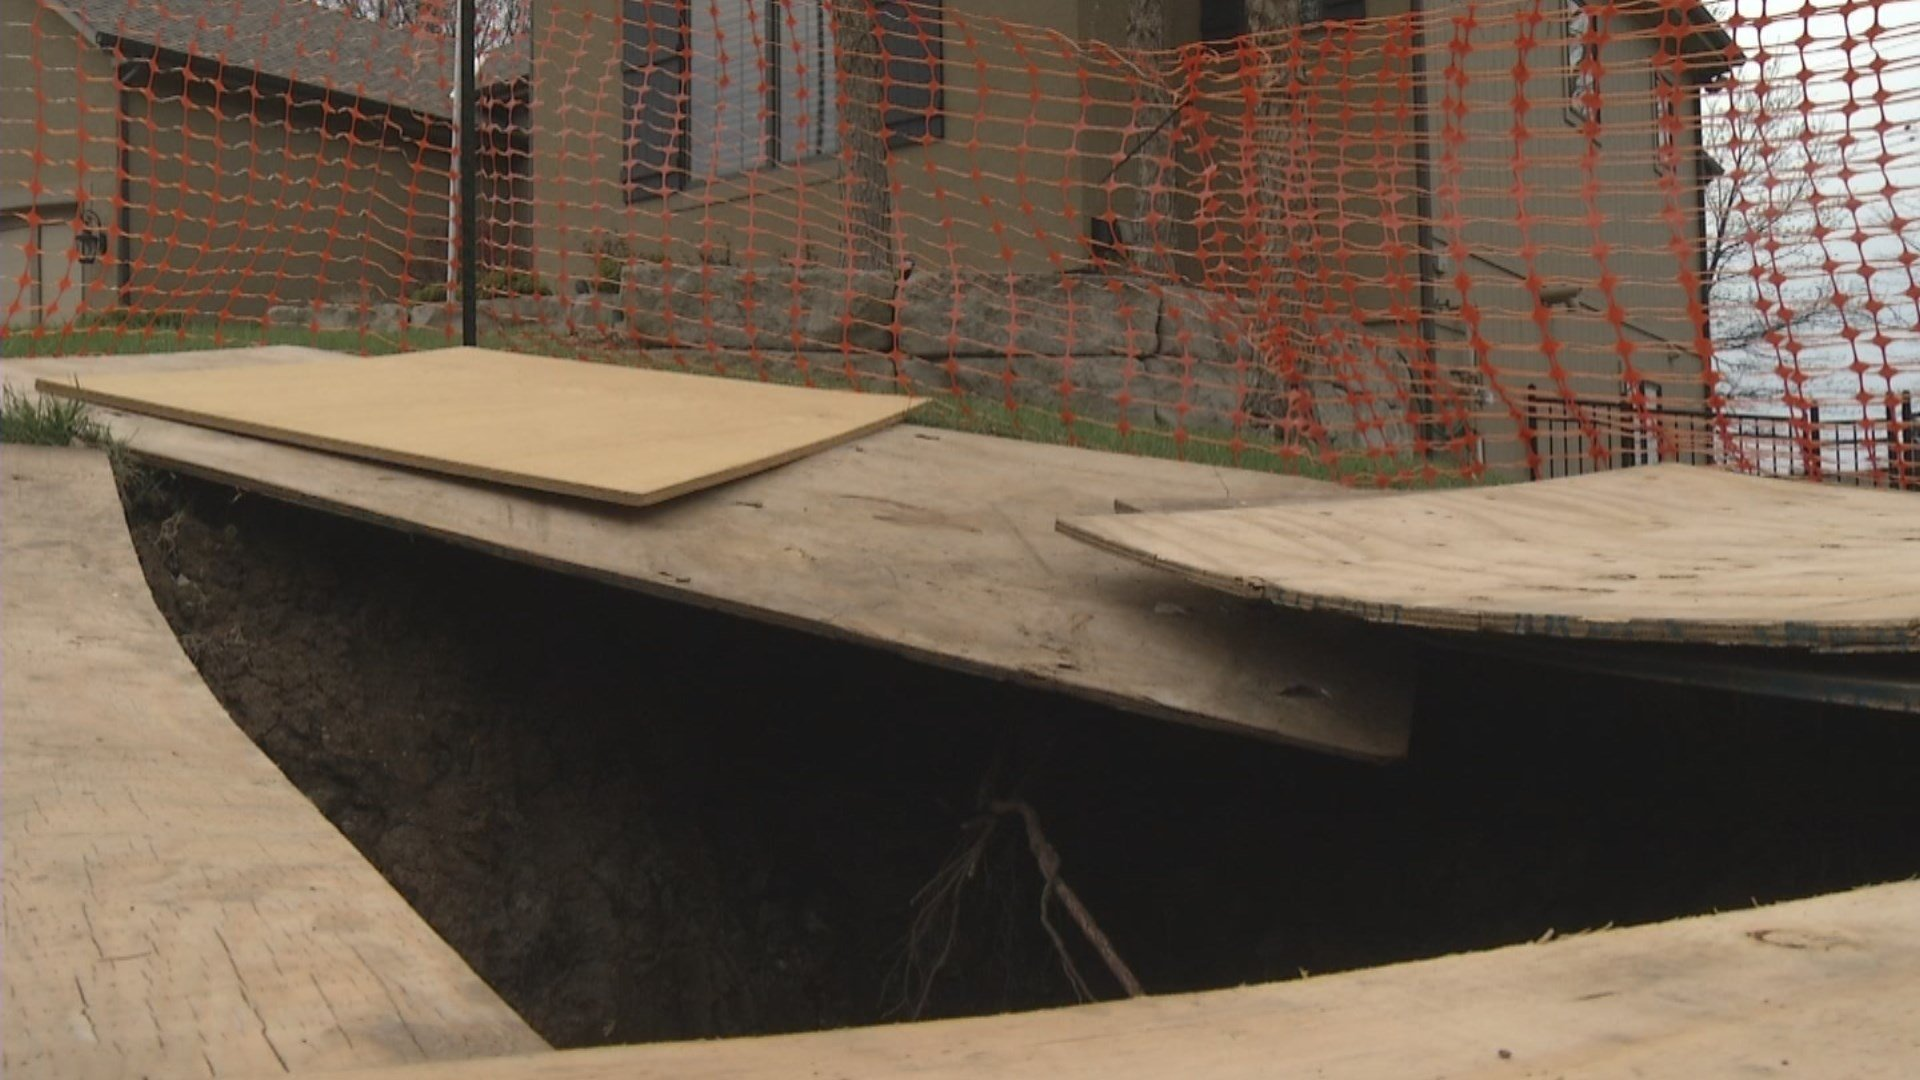 Six weeks ago, Kansas City WaterServices went searching for an underground manhole they hoped to raise to ground level. They showed up at the O'Bar's home and began digging. (KCTV5)